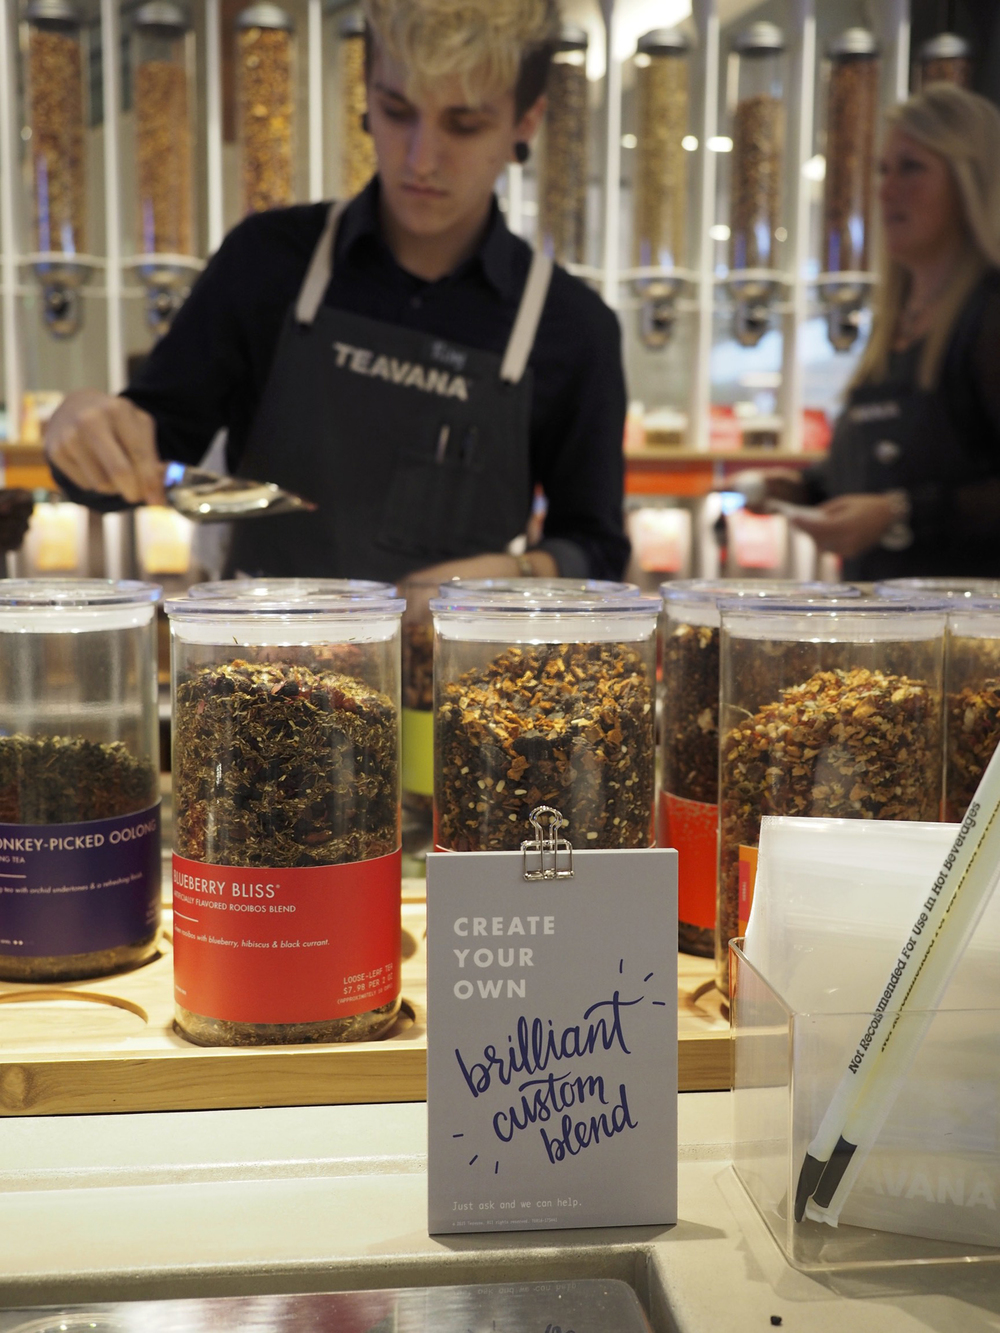 teavana30 create your own custom blend 10Nov15.jpg